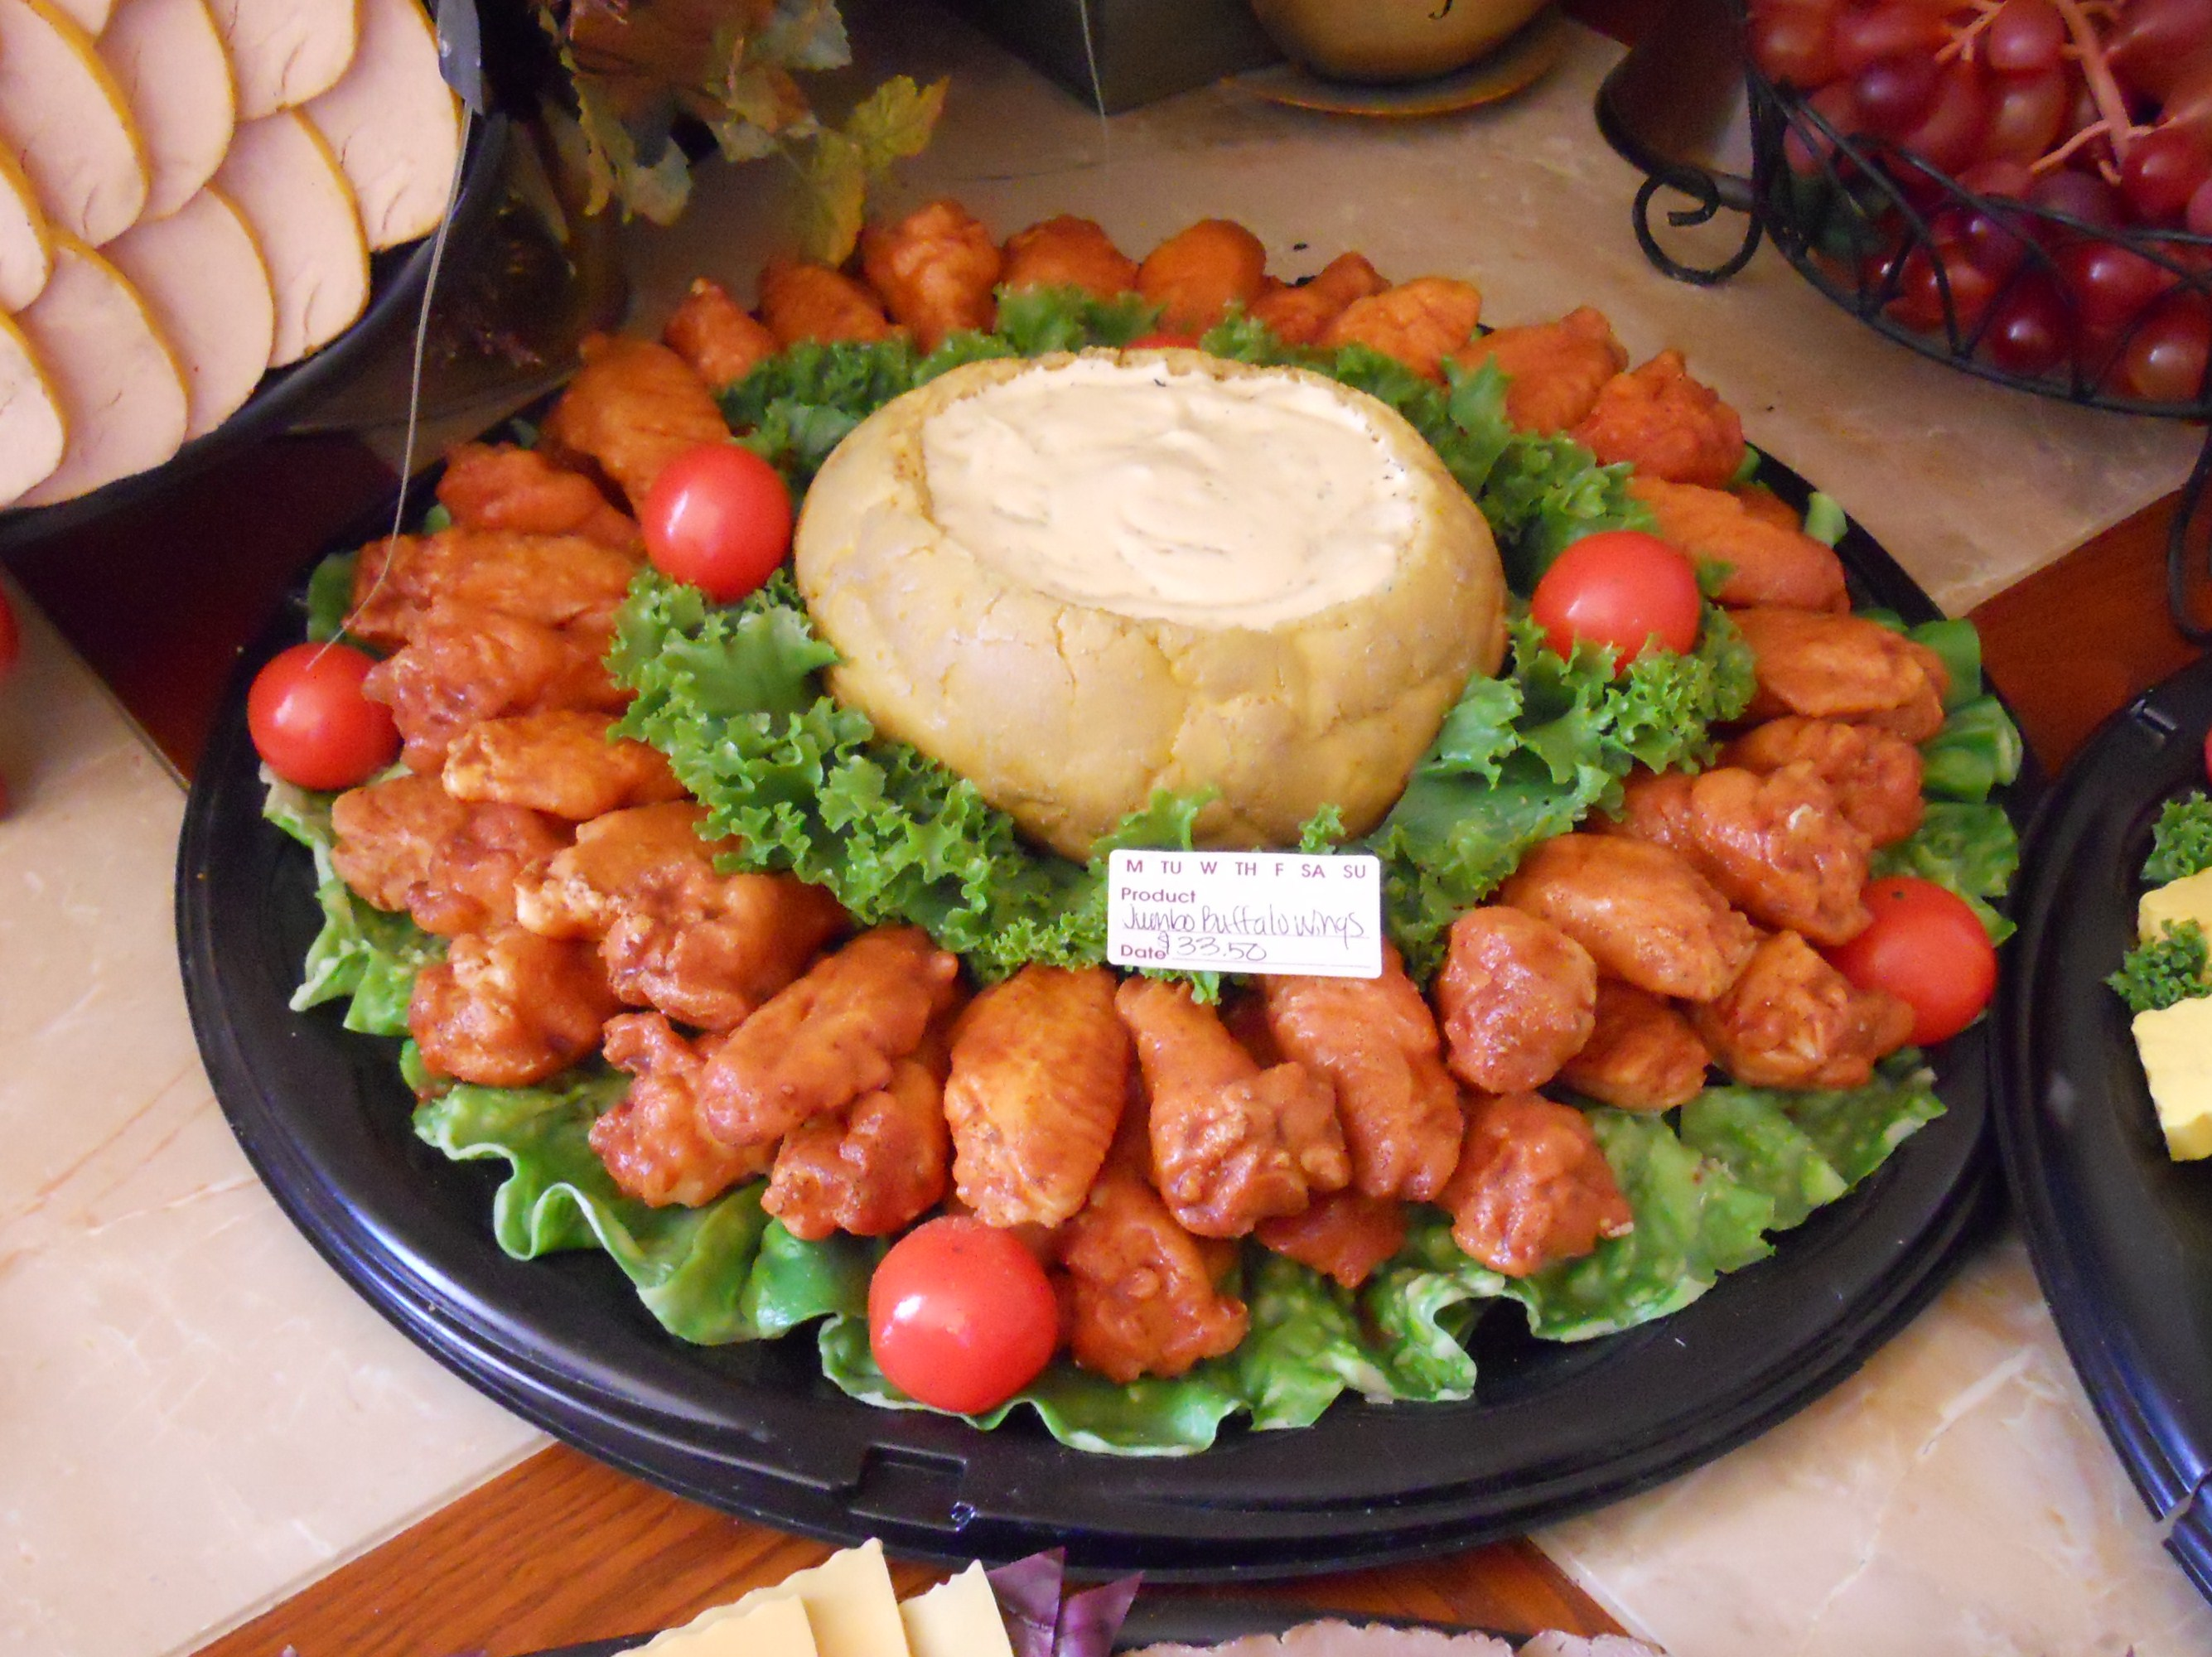 Honeybaked Ham Company is located at the address Dressler rd Nw in Canton, Ohio They can be contacted via phone at () for pricing, hours and directions.